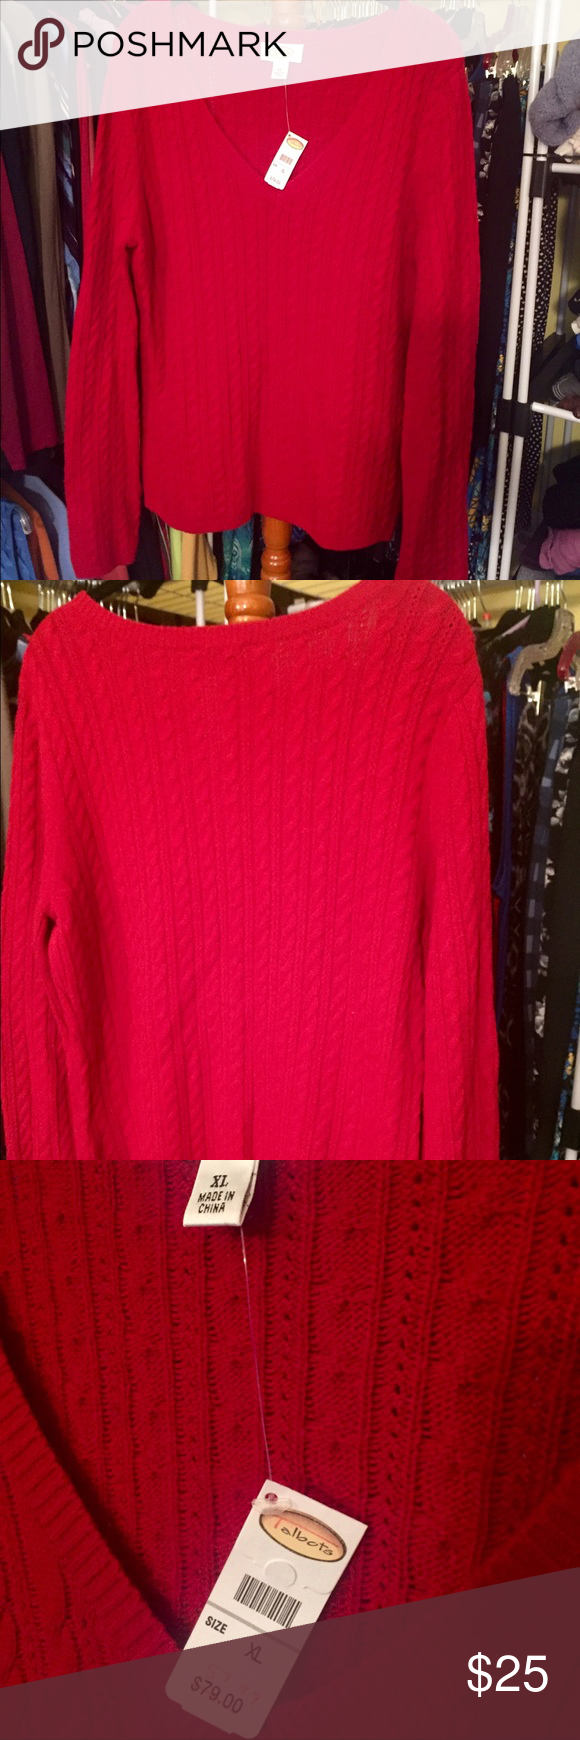 💥BNWT Talbots sweater Here's your holiday sweater! Gorgeous red V-neck, brand new! Buy this so I don't keep it!! 😳 Talbots Sweaters V-Necks